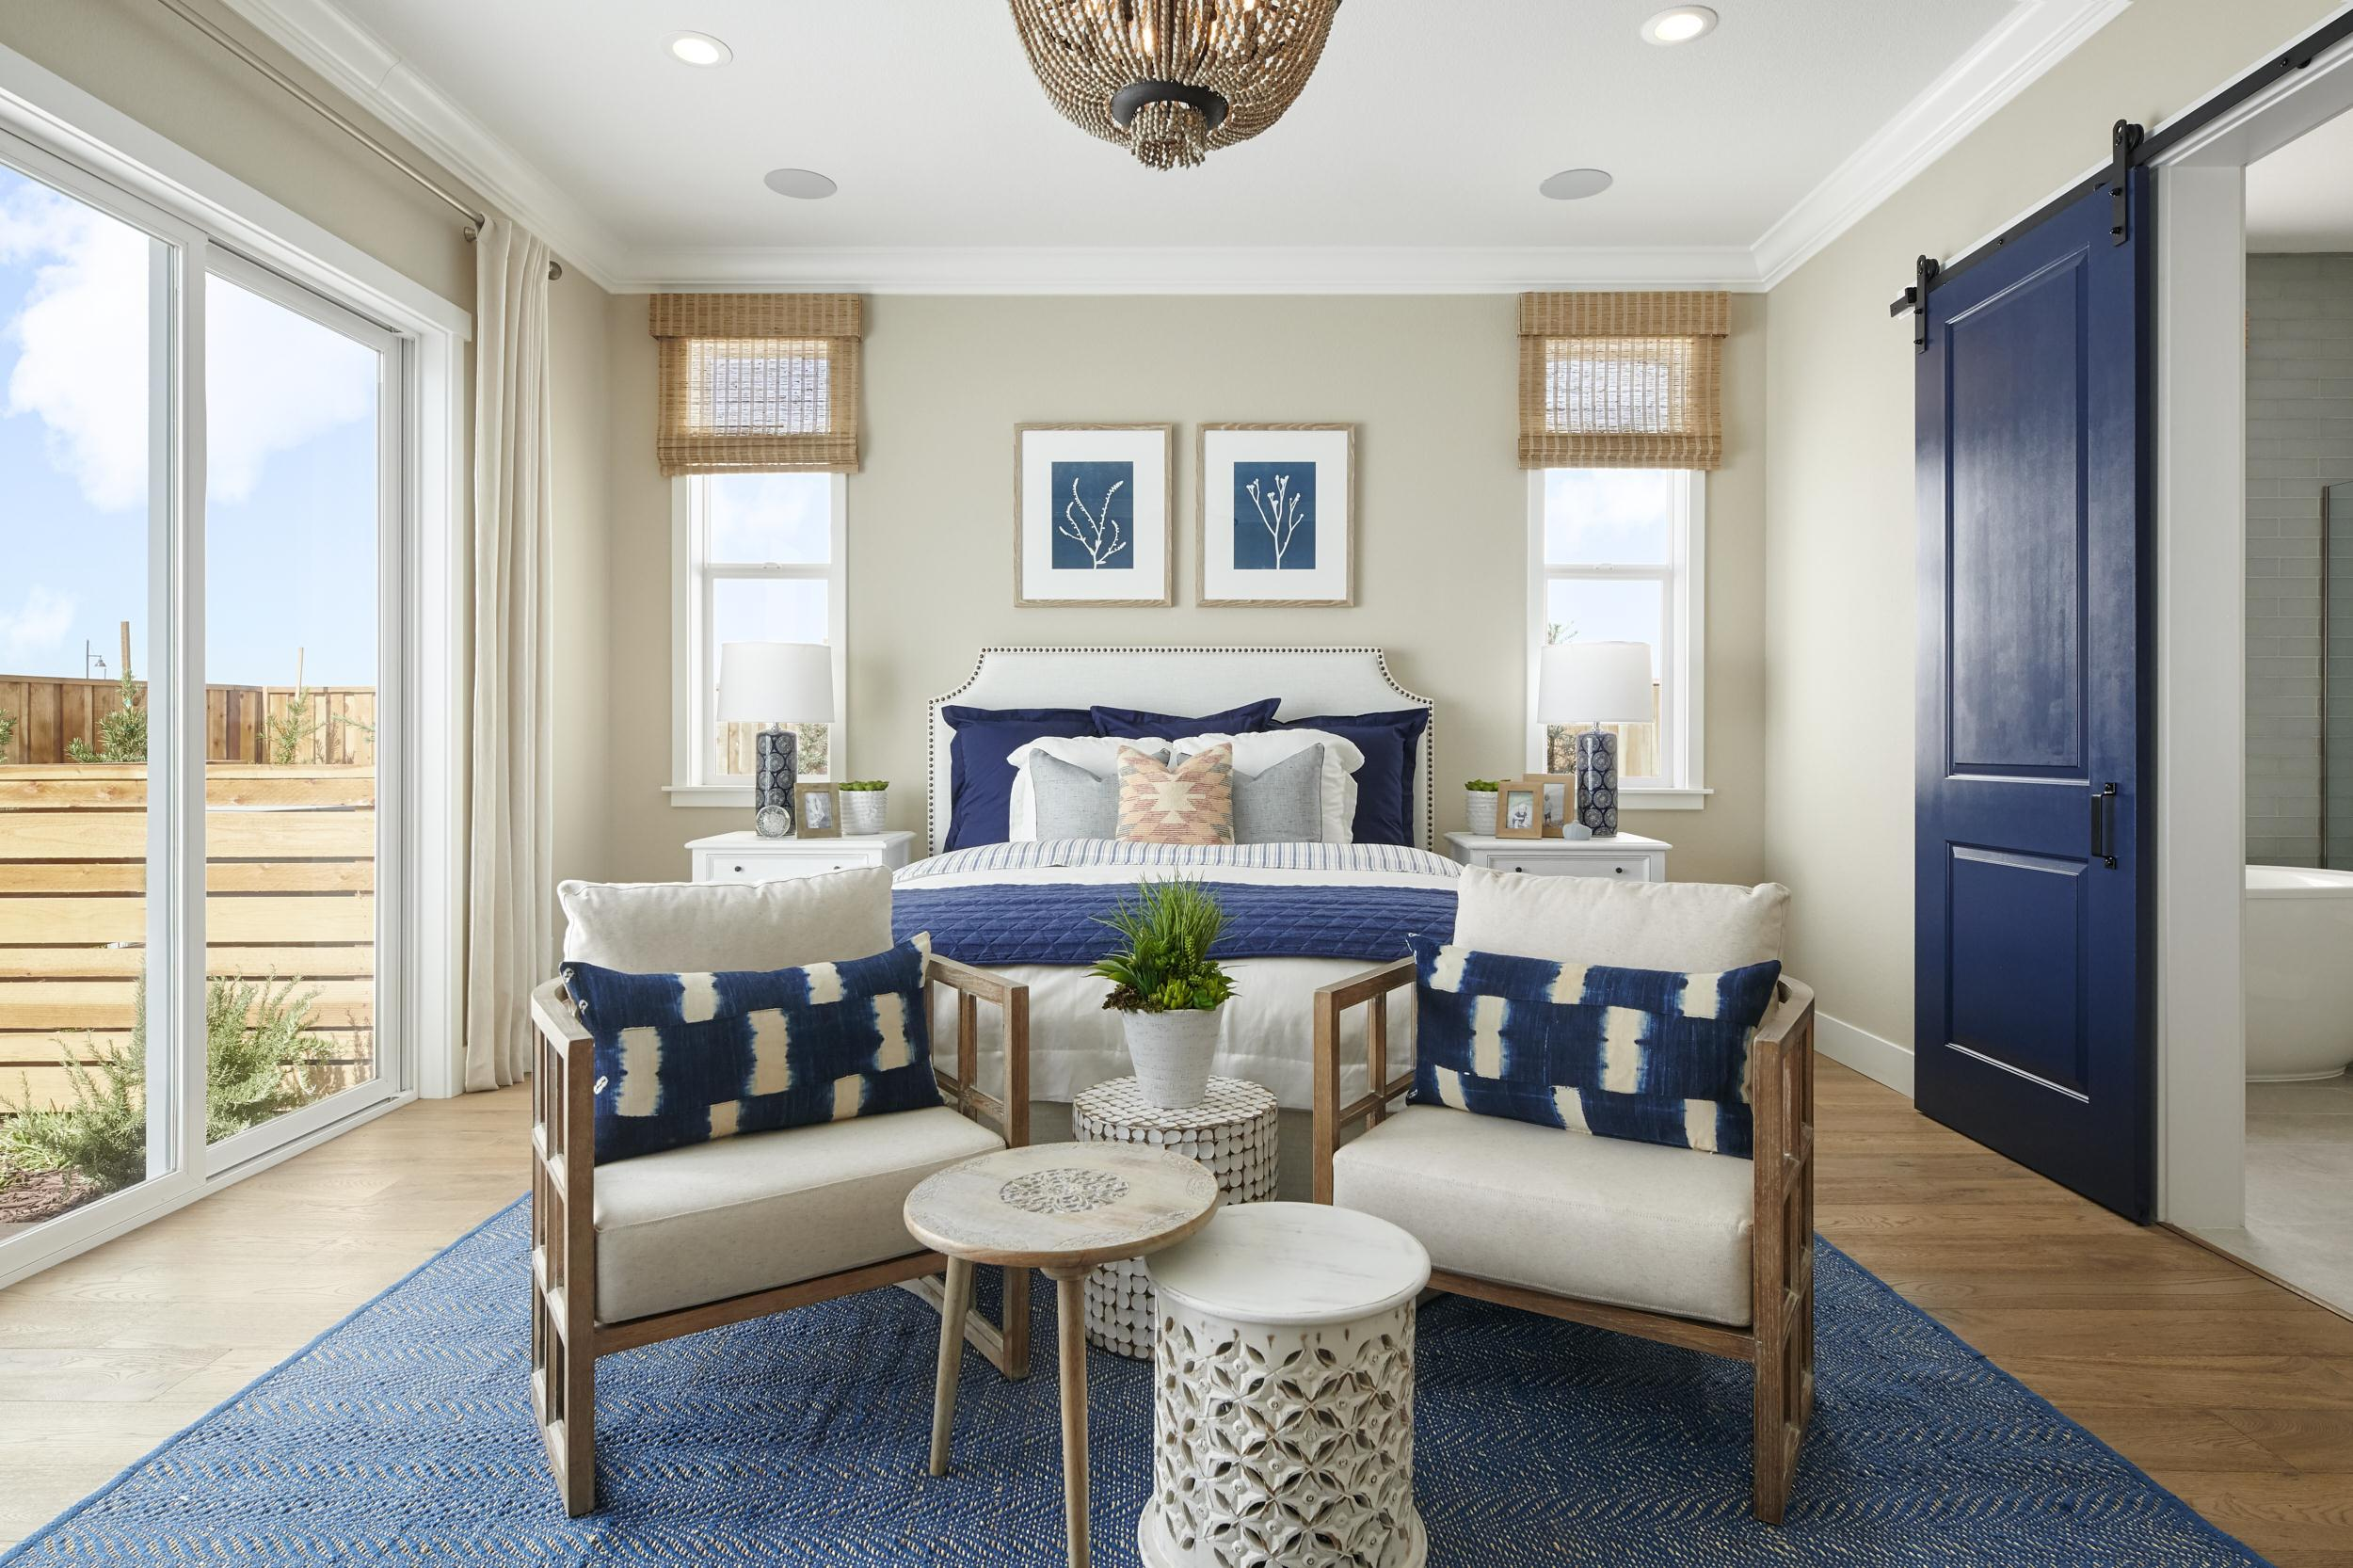 Bedroom featured in the Residence 2 By Trumark Homes in Stockton-Lodi, CA